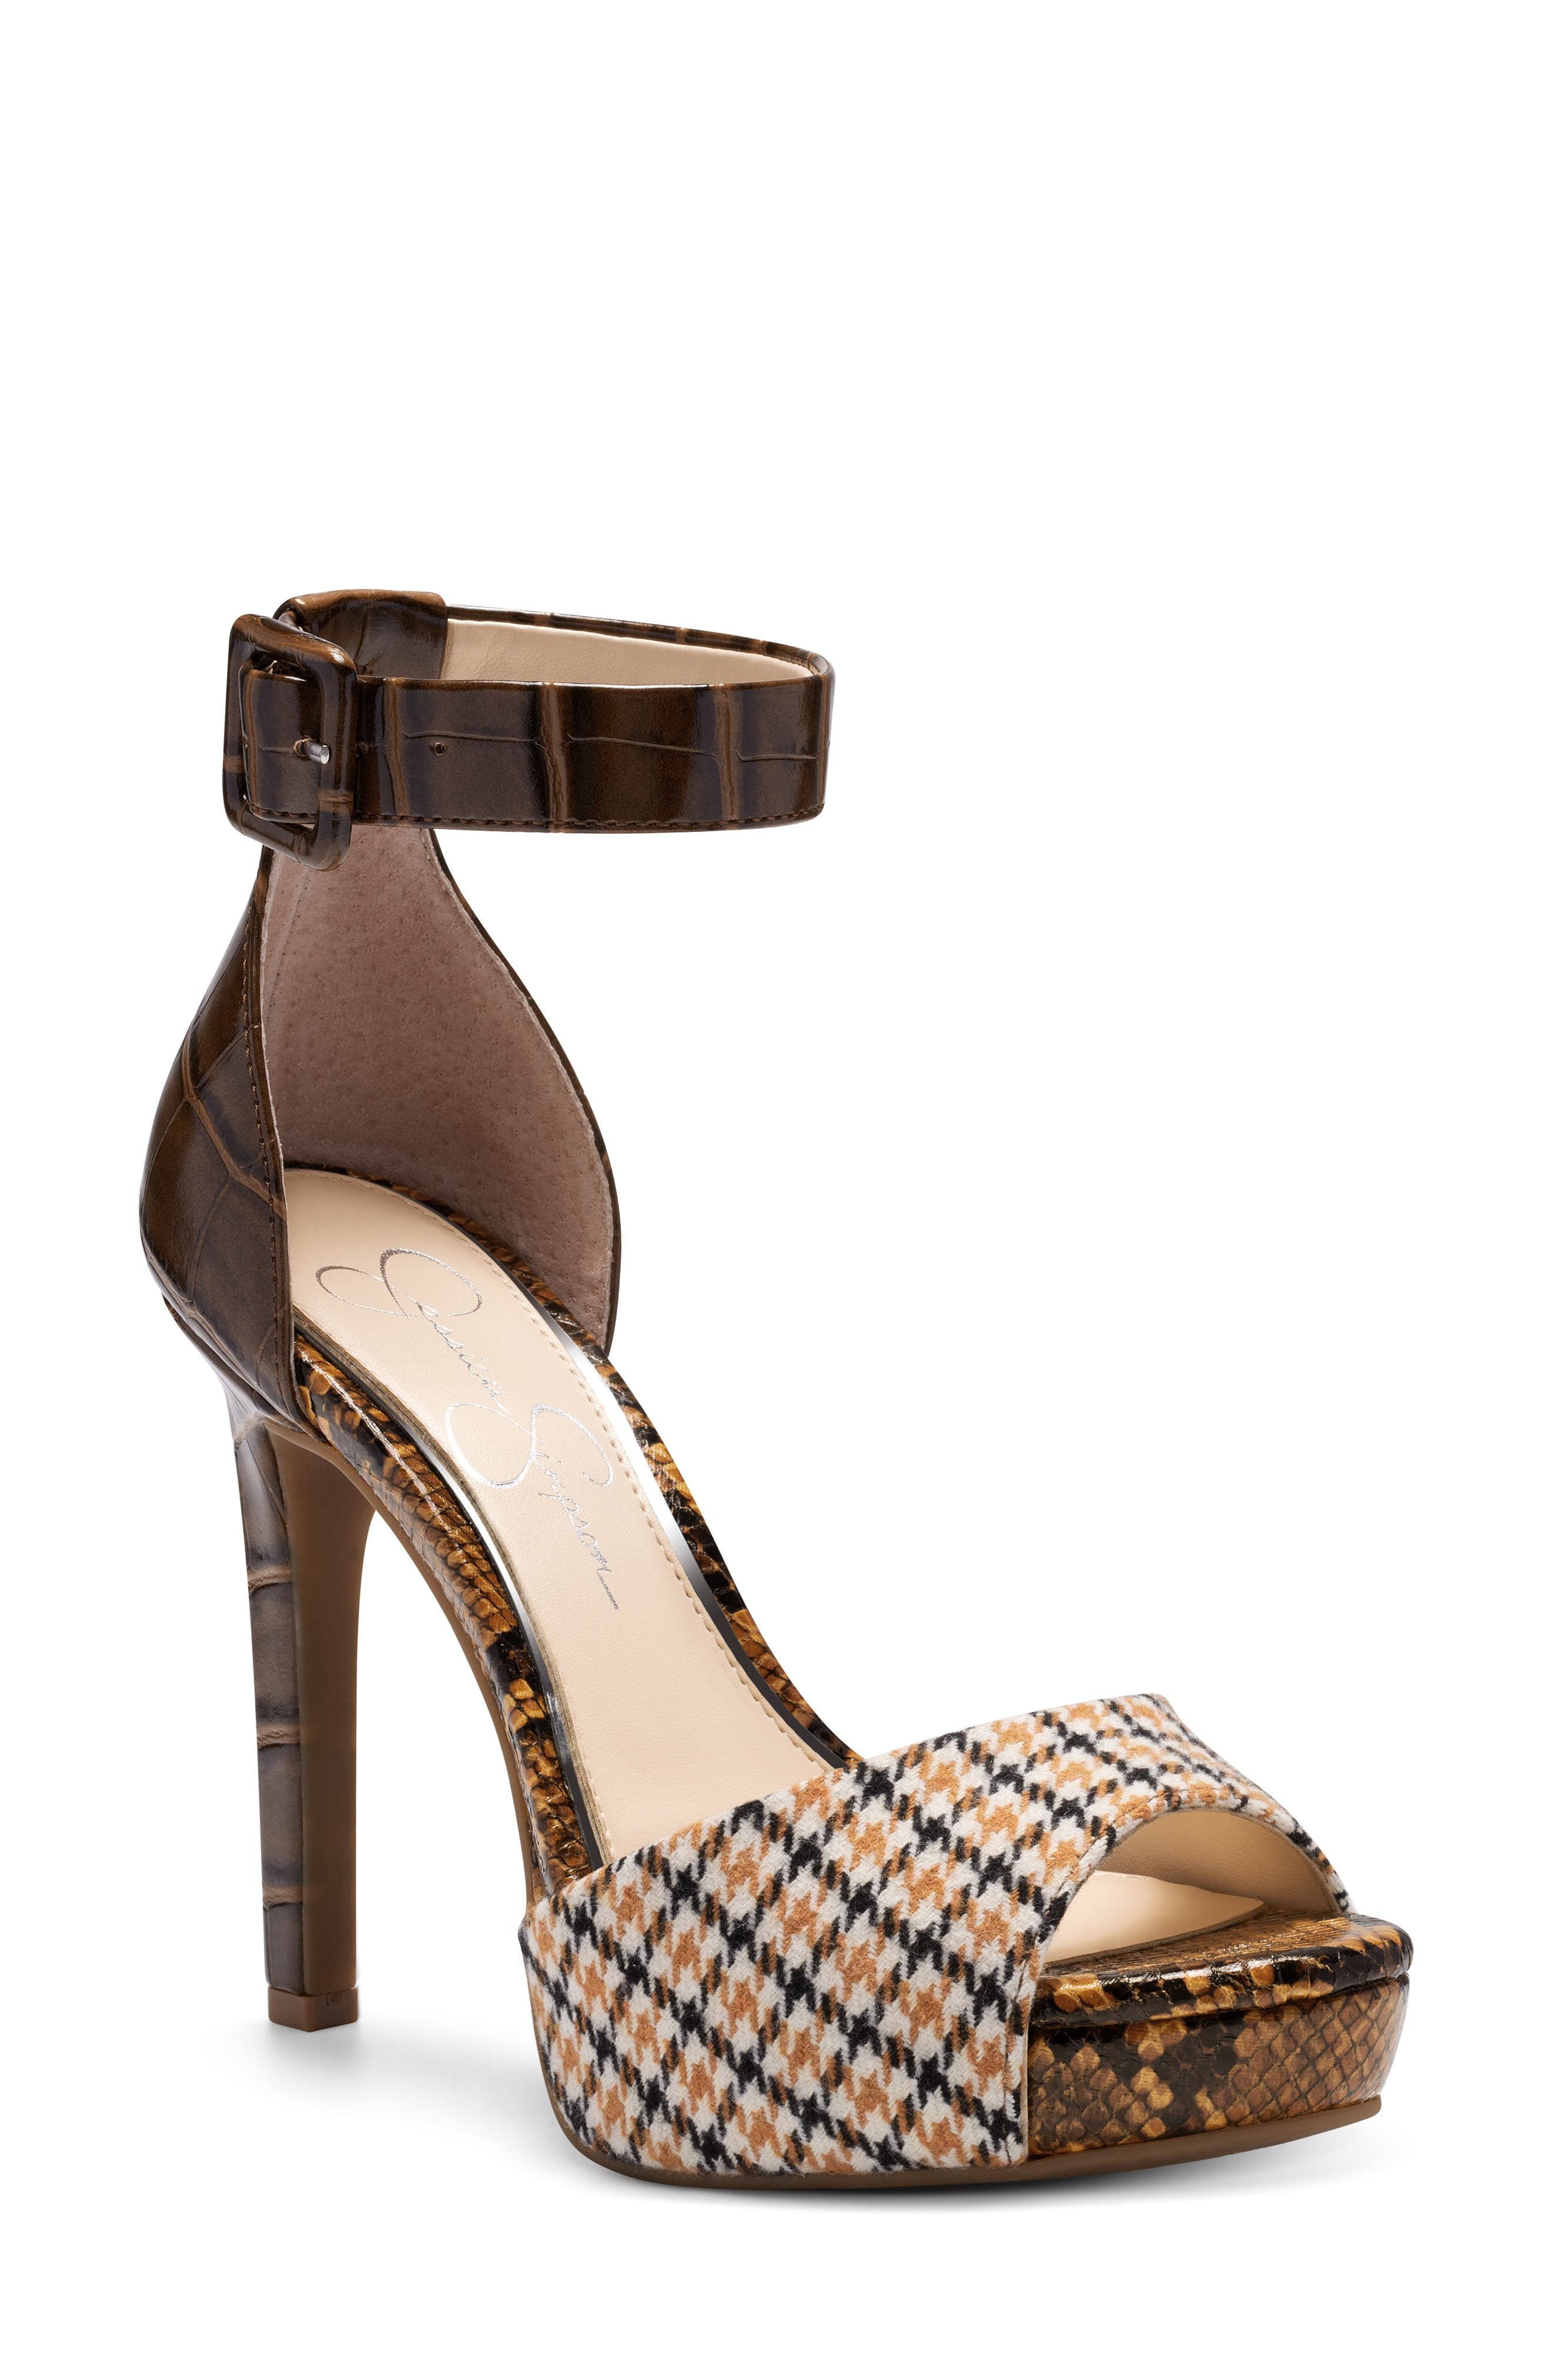 Mixed patterns heighten the eclectic retro style of this standout platform sandal. Style Name: Jessica Simpson Divene Sandal (Women). Style Number: 5869758 2. Available in stores.